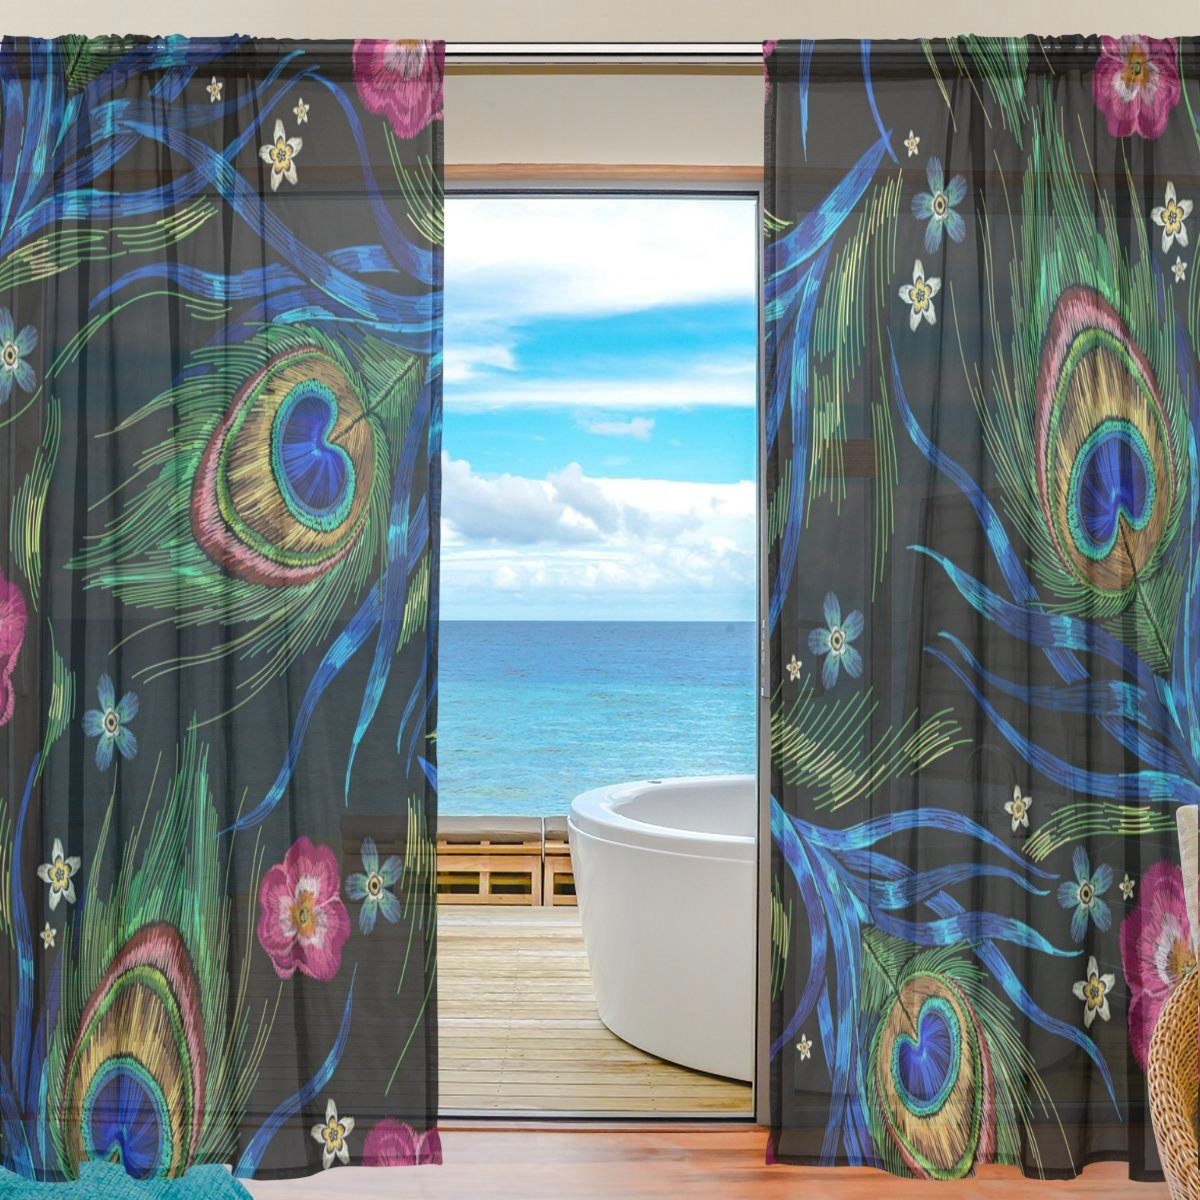 SEULIFE Window Sheer Curtain, Animal Peacock Feathers Rose Flower Voile Curtain Drapes for Door Kitchen Living Room Bedroom 55x78 inches 2 Panels